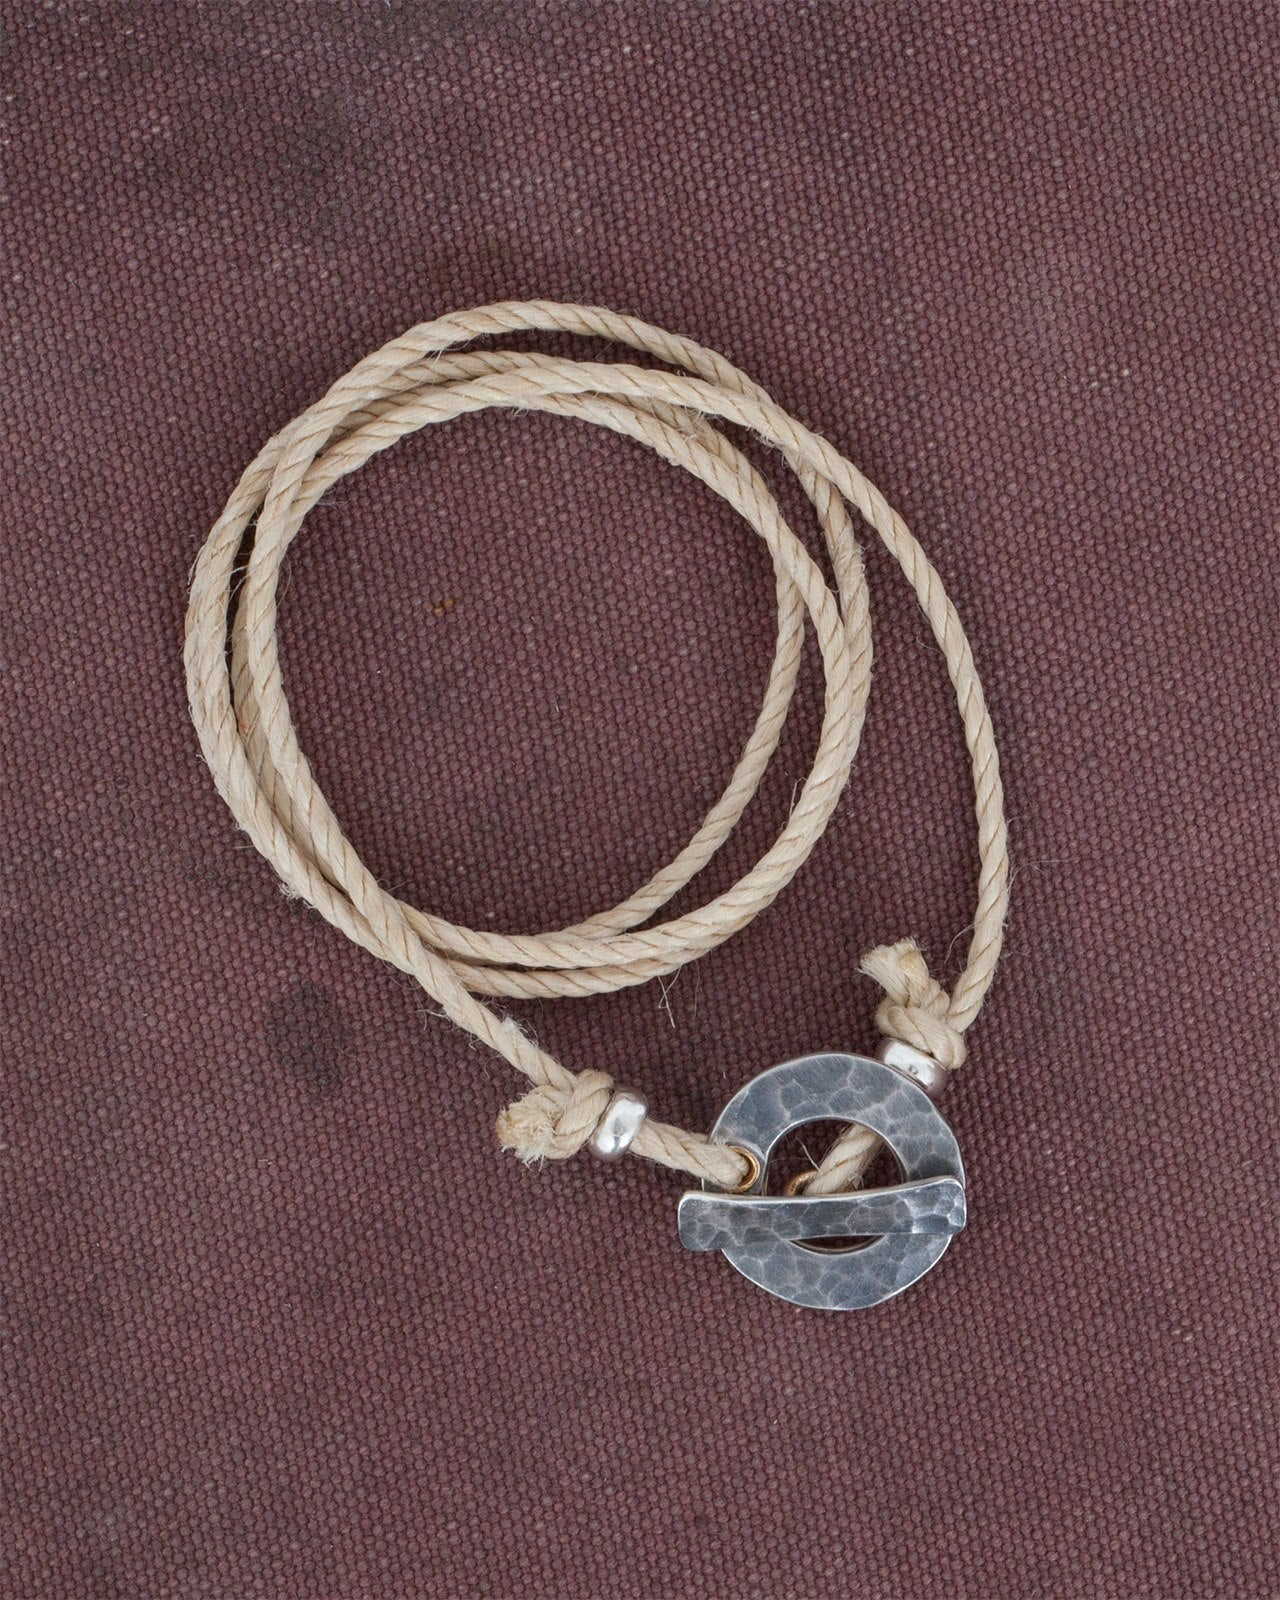 Larry Smith Musubi Necklace, 70cm